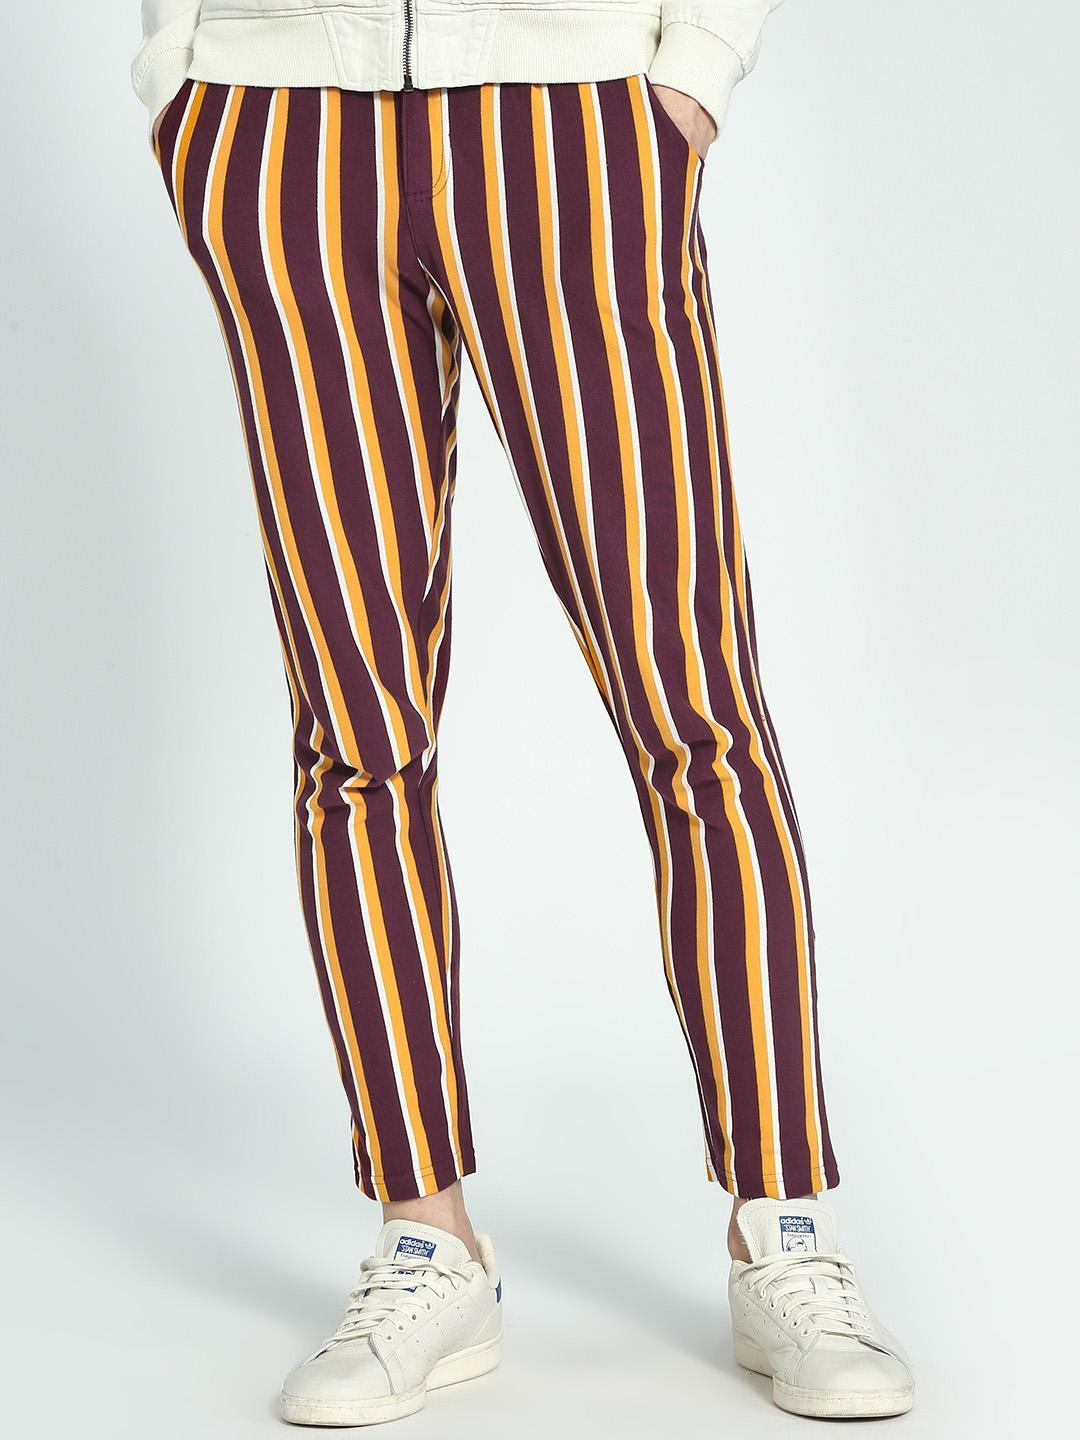 Garcon Maroon Yarn-Dyed Vertical Stripe Trousers 1